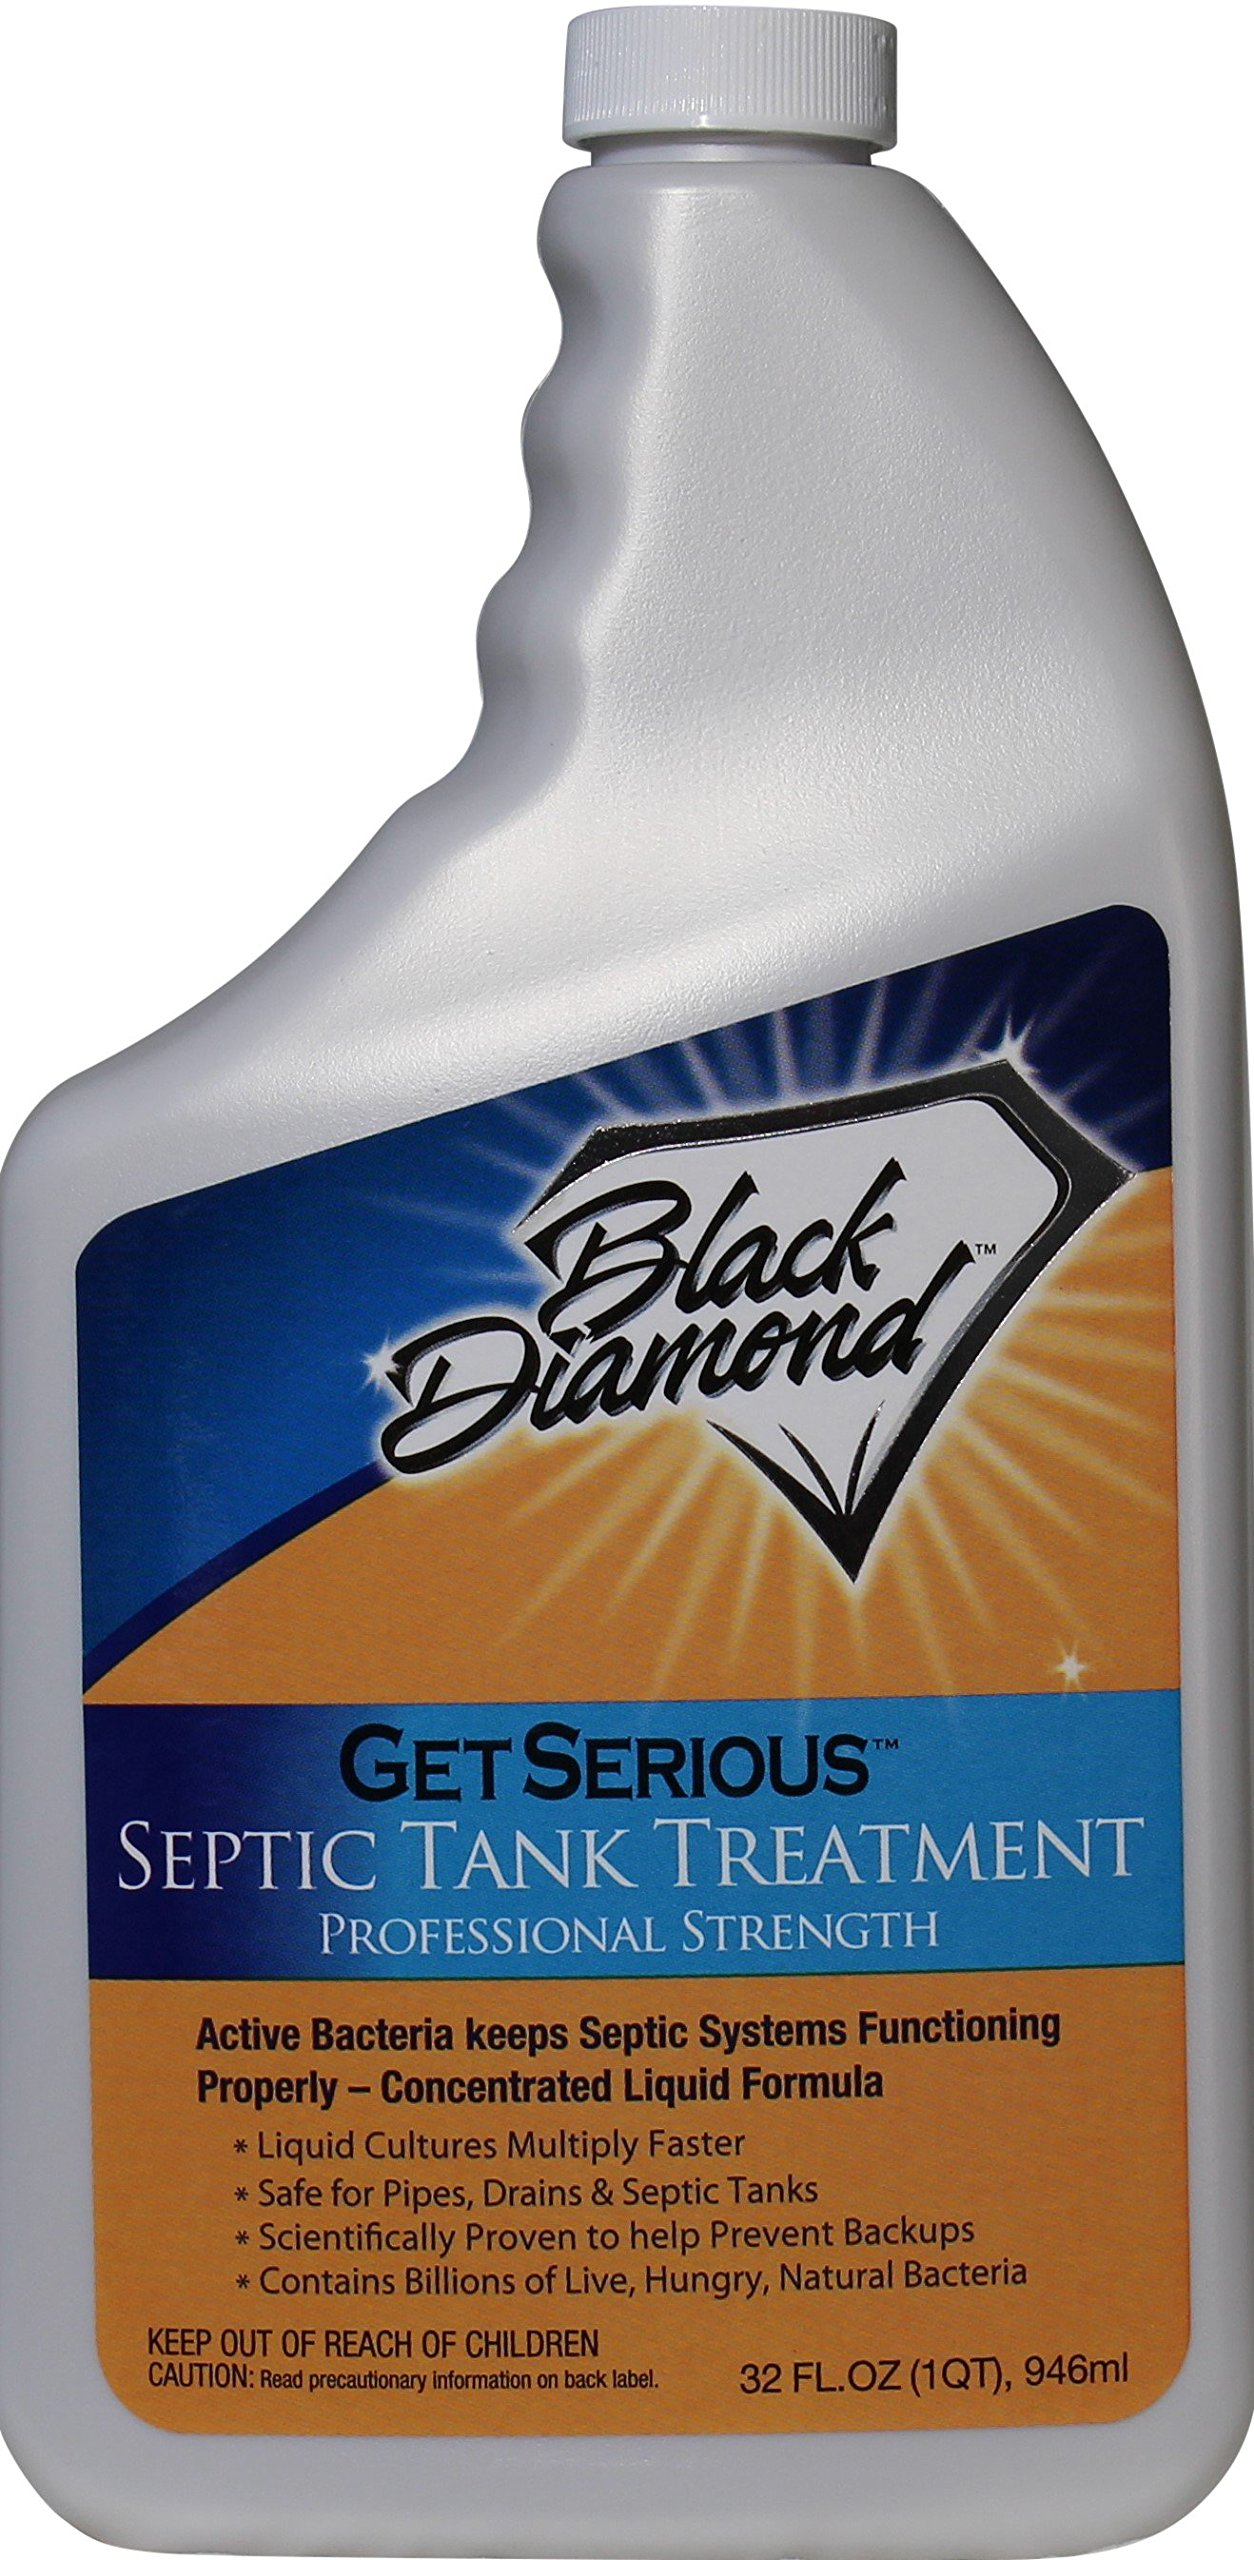 GET SERIOUS Septic Tank Treatment Liquid Natural Enzymes For Residential, Commercial, Industrial, RV's Systems. 32 ounces. (1, quart)